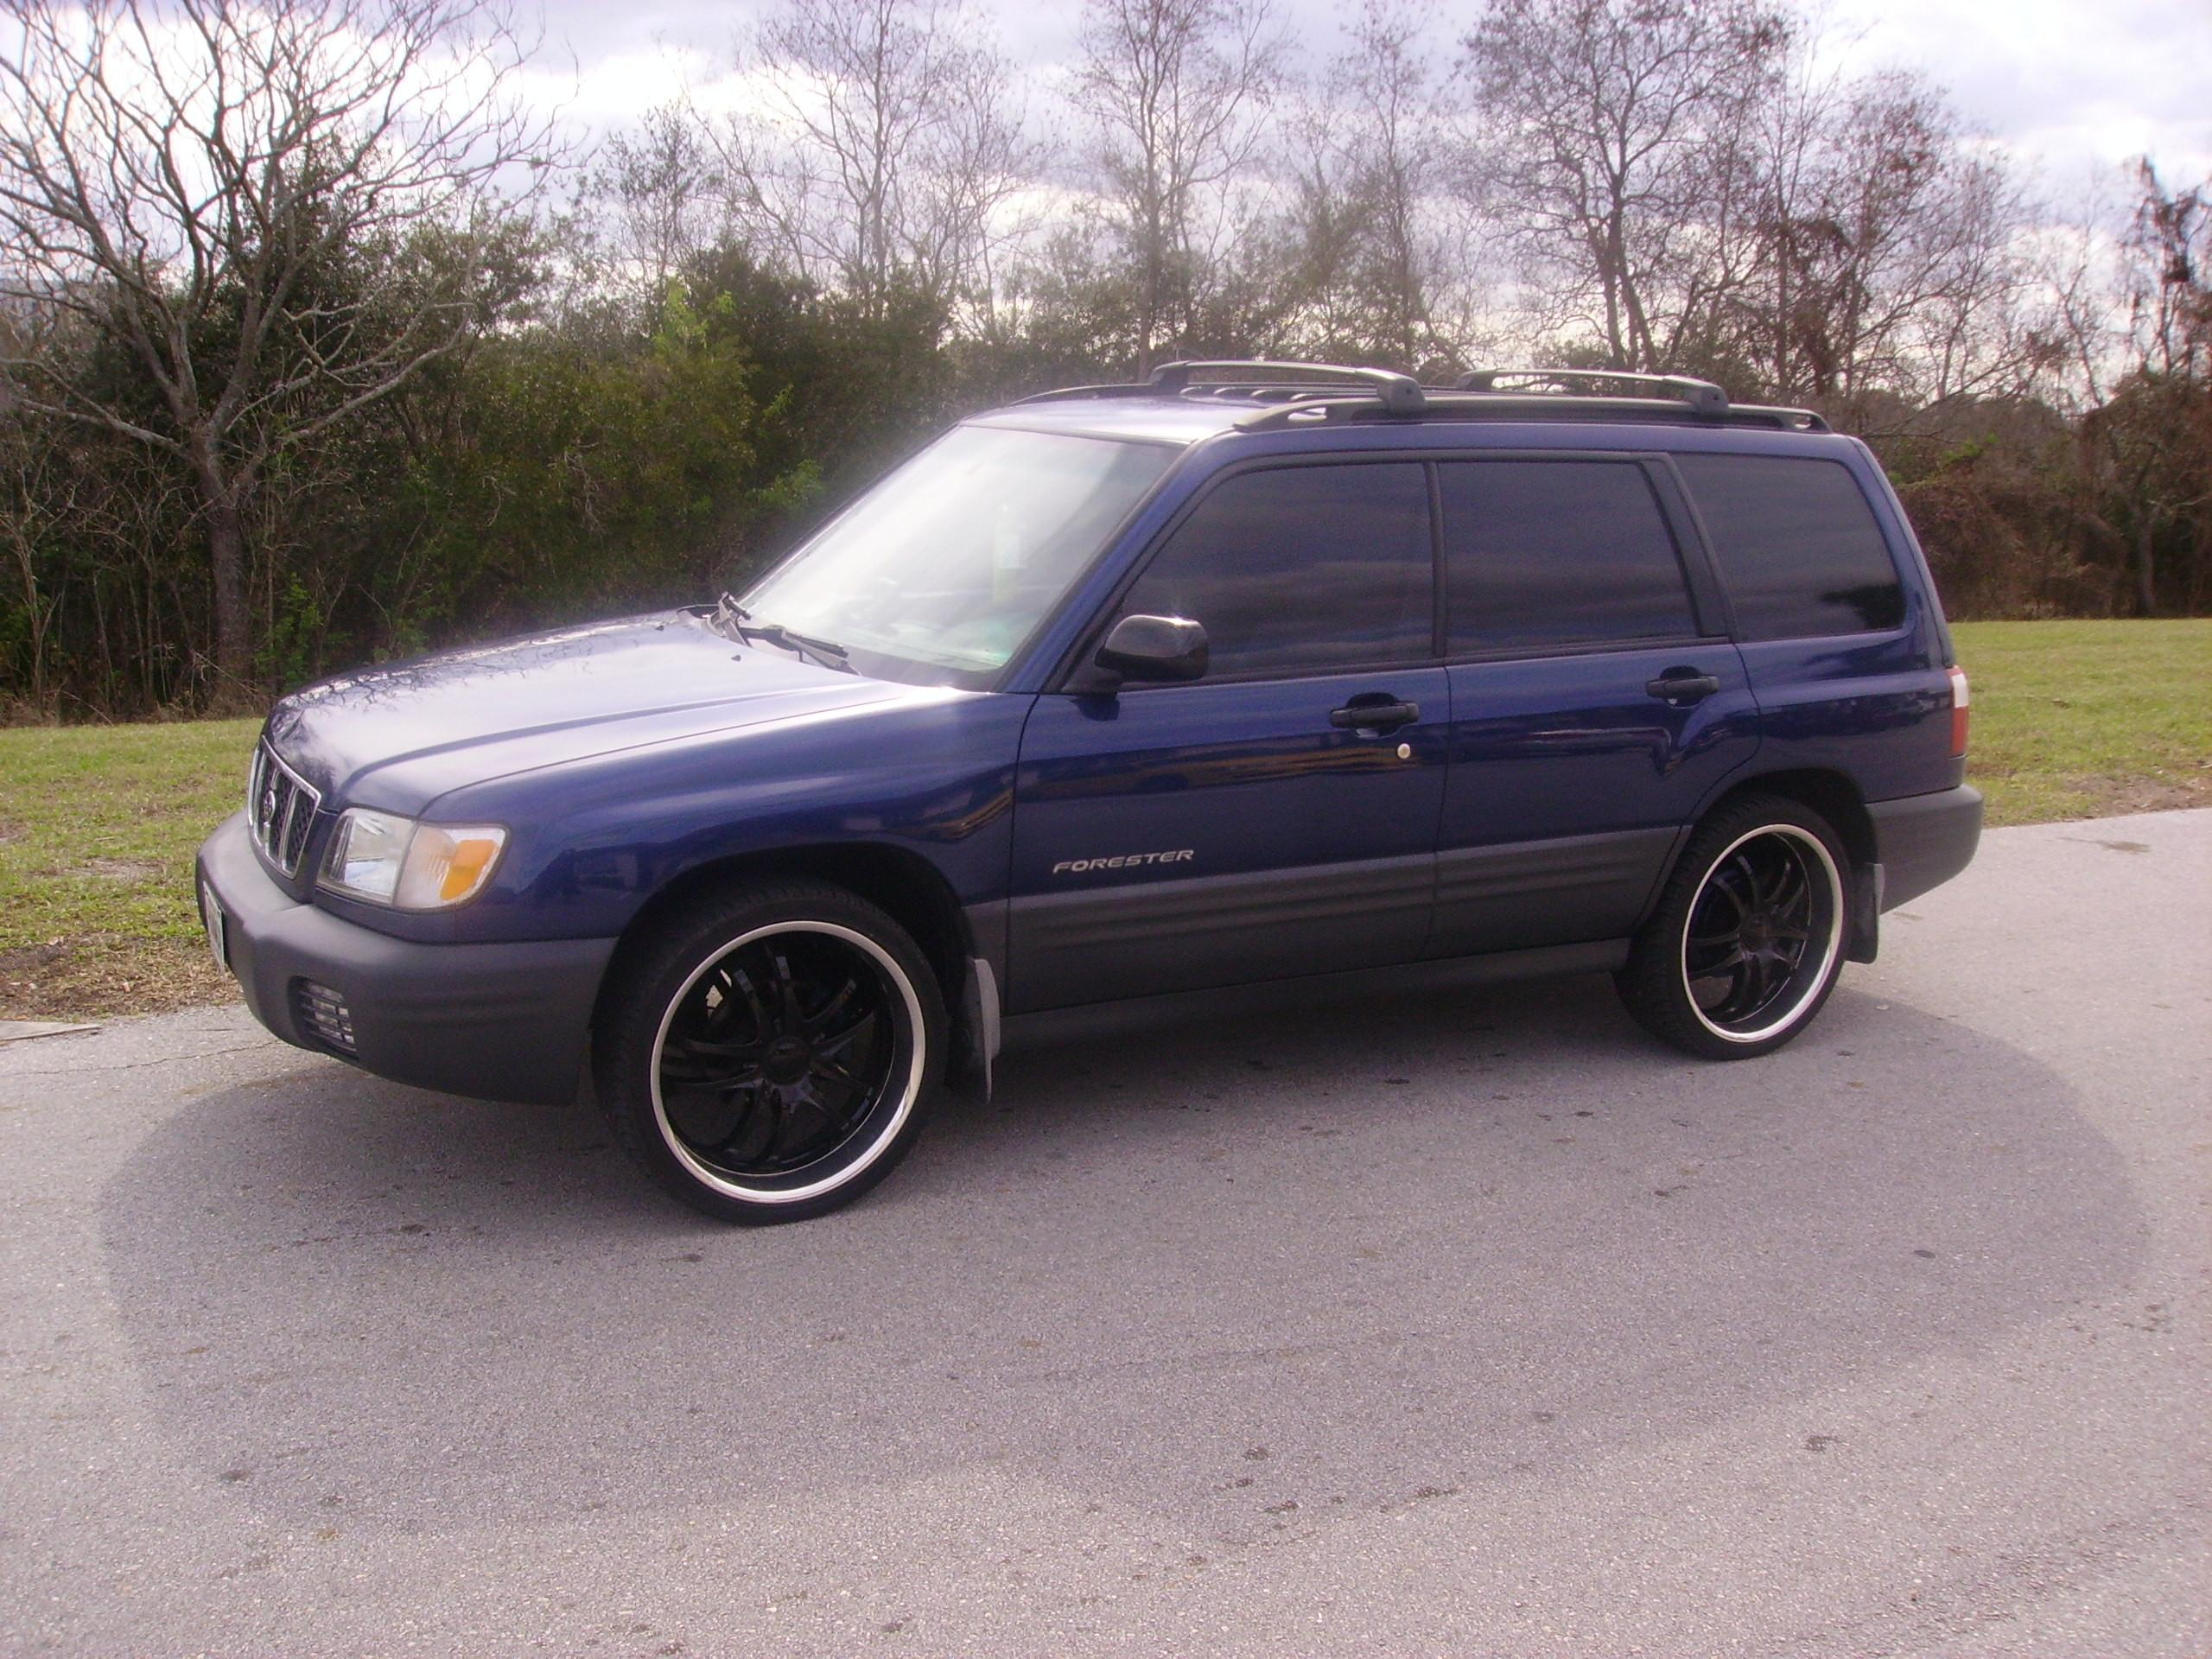 sileightyking 2001 subaru foresterl sport utility 4d specs photos modification info at cardomain cardomain